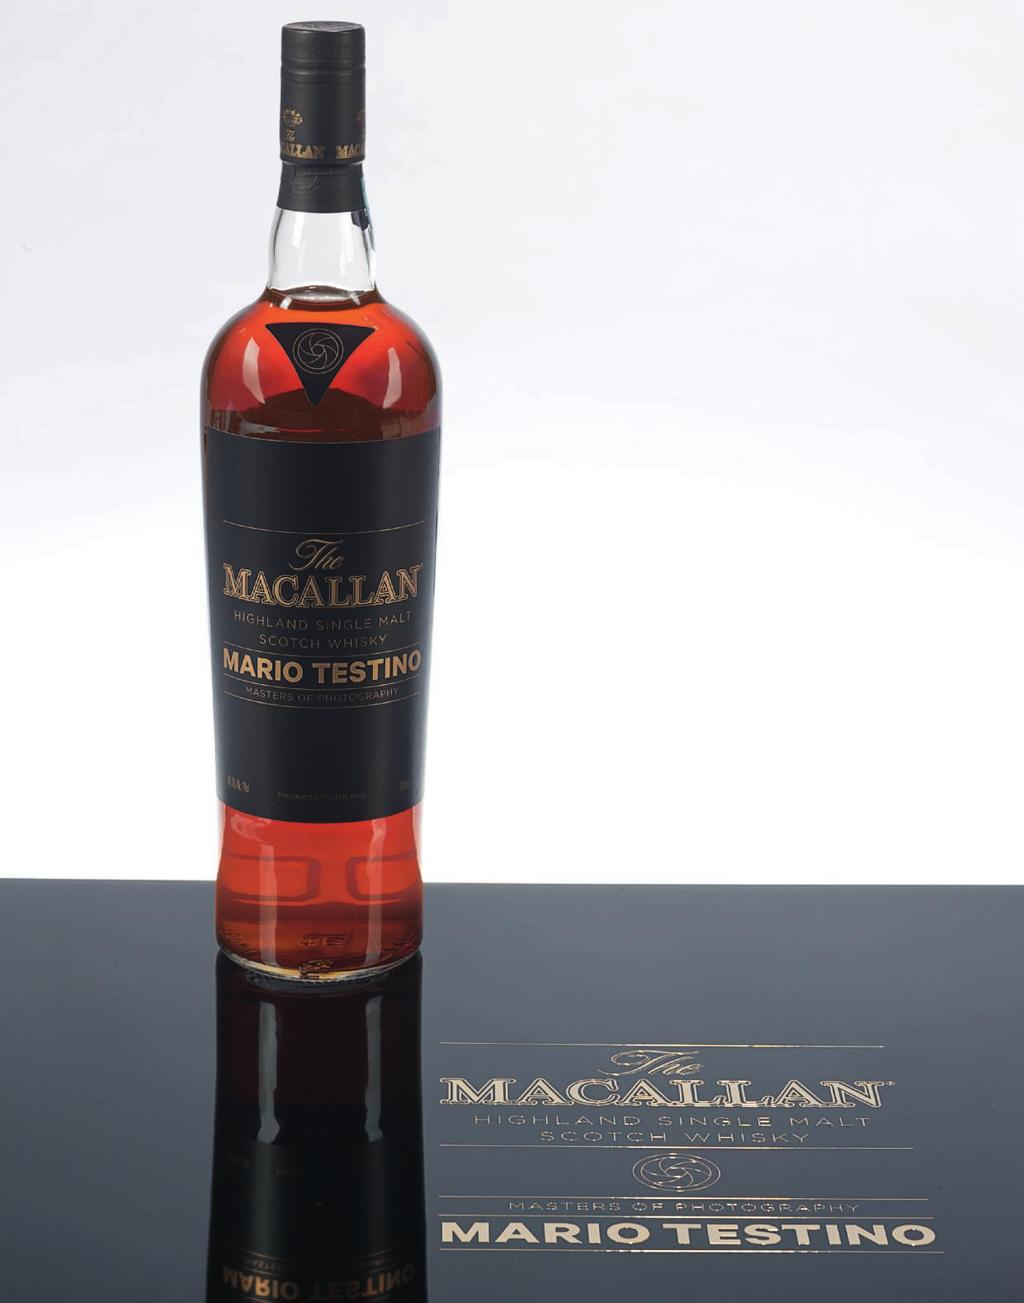 58 The Macallan, Masters of Photography Mario Testino Purple Speyside Includes six Pillars of Macallan 50ml bottles All in presentation case with limited edition print of Purple 1 bottle per lot